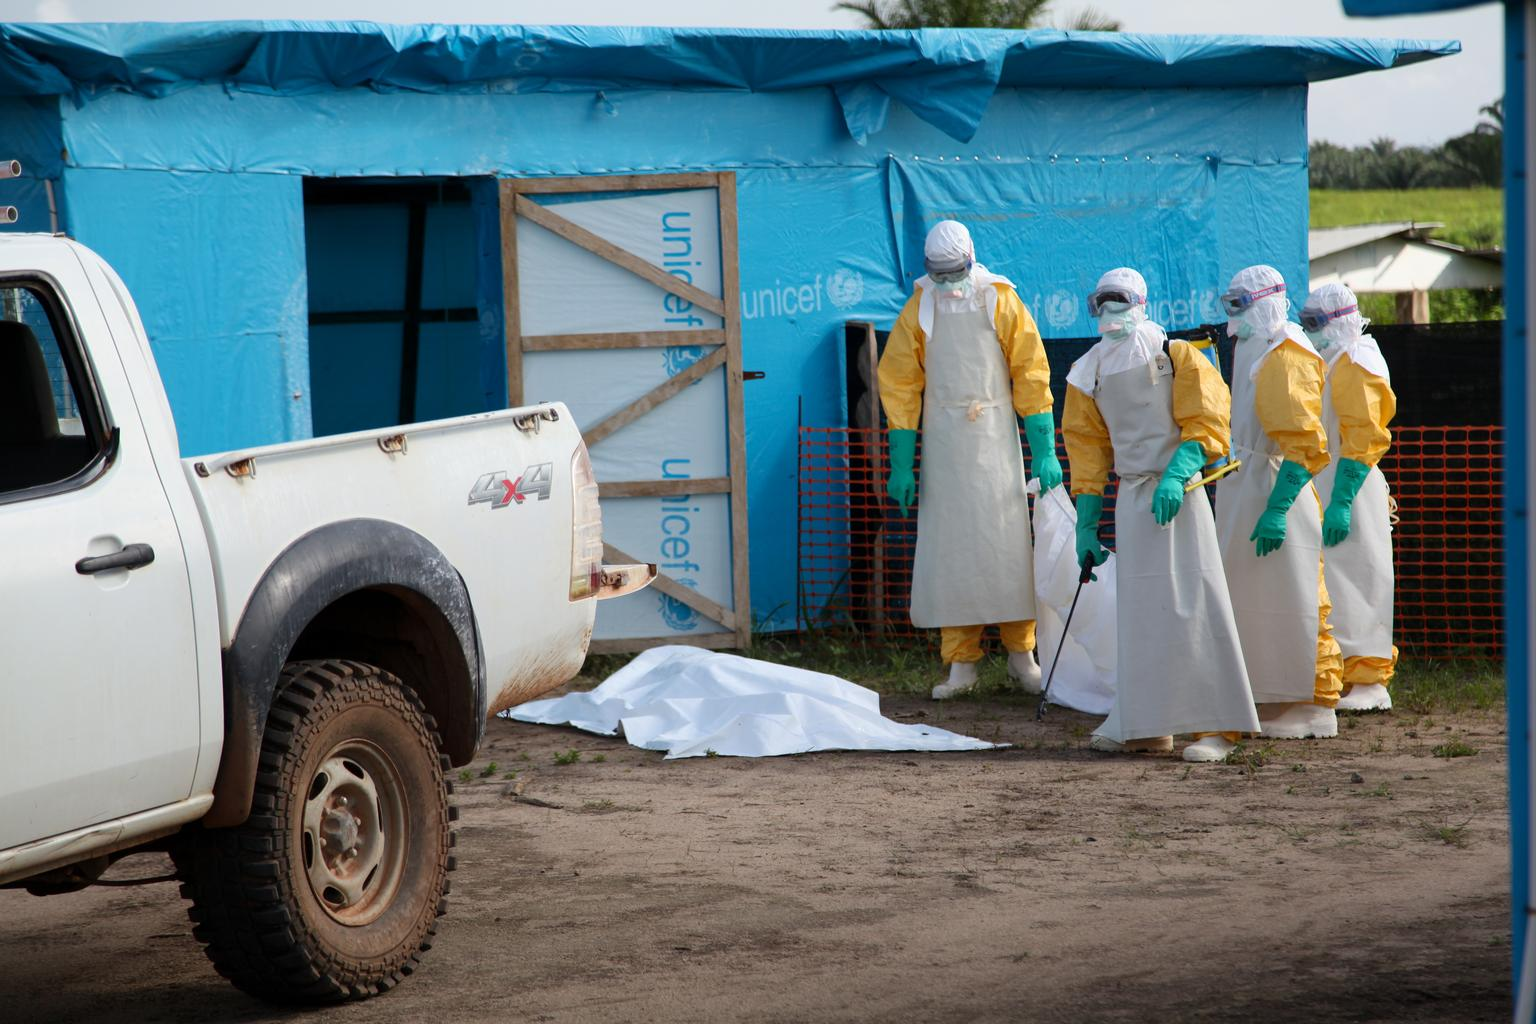 In July 2014 in Liberia, health workers, wearing head-to-toe protective gear, prepare for work, outside an isolation unit in Foya District, Lofa County.